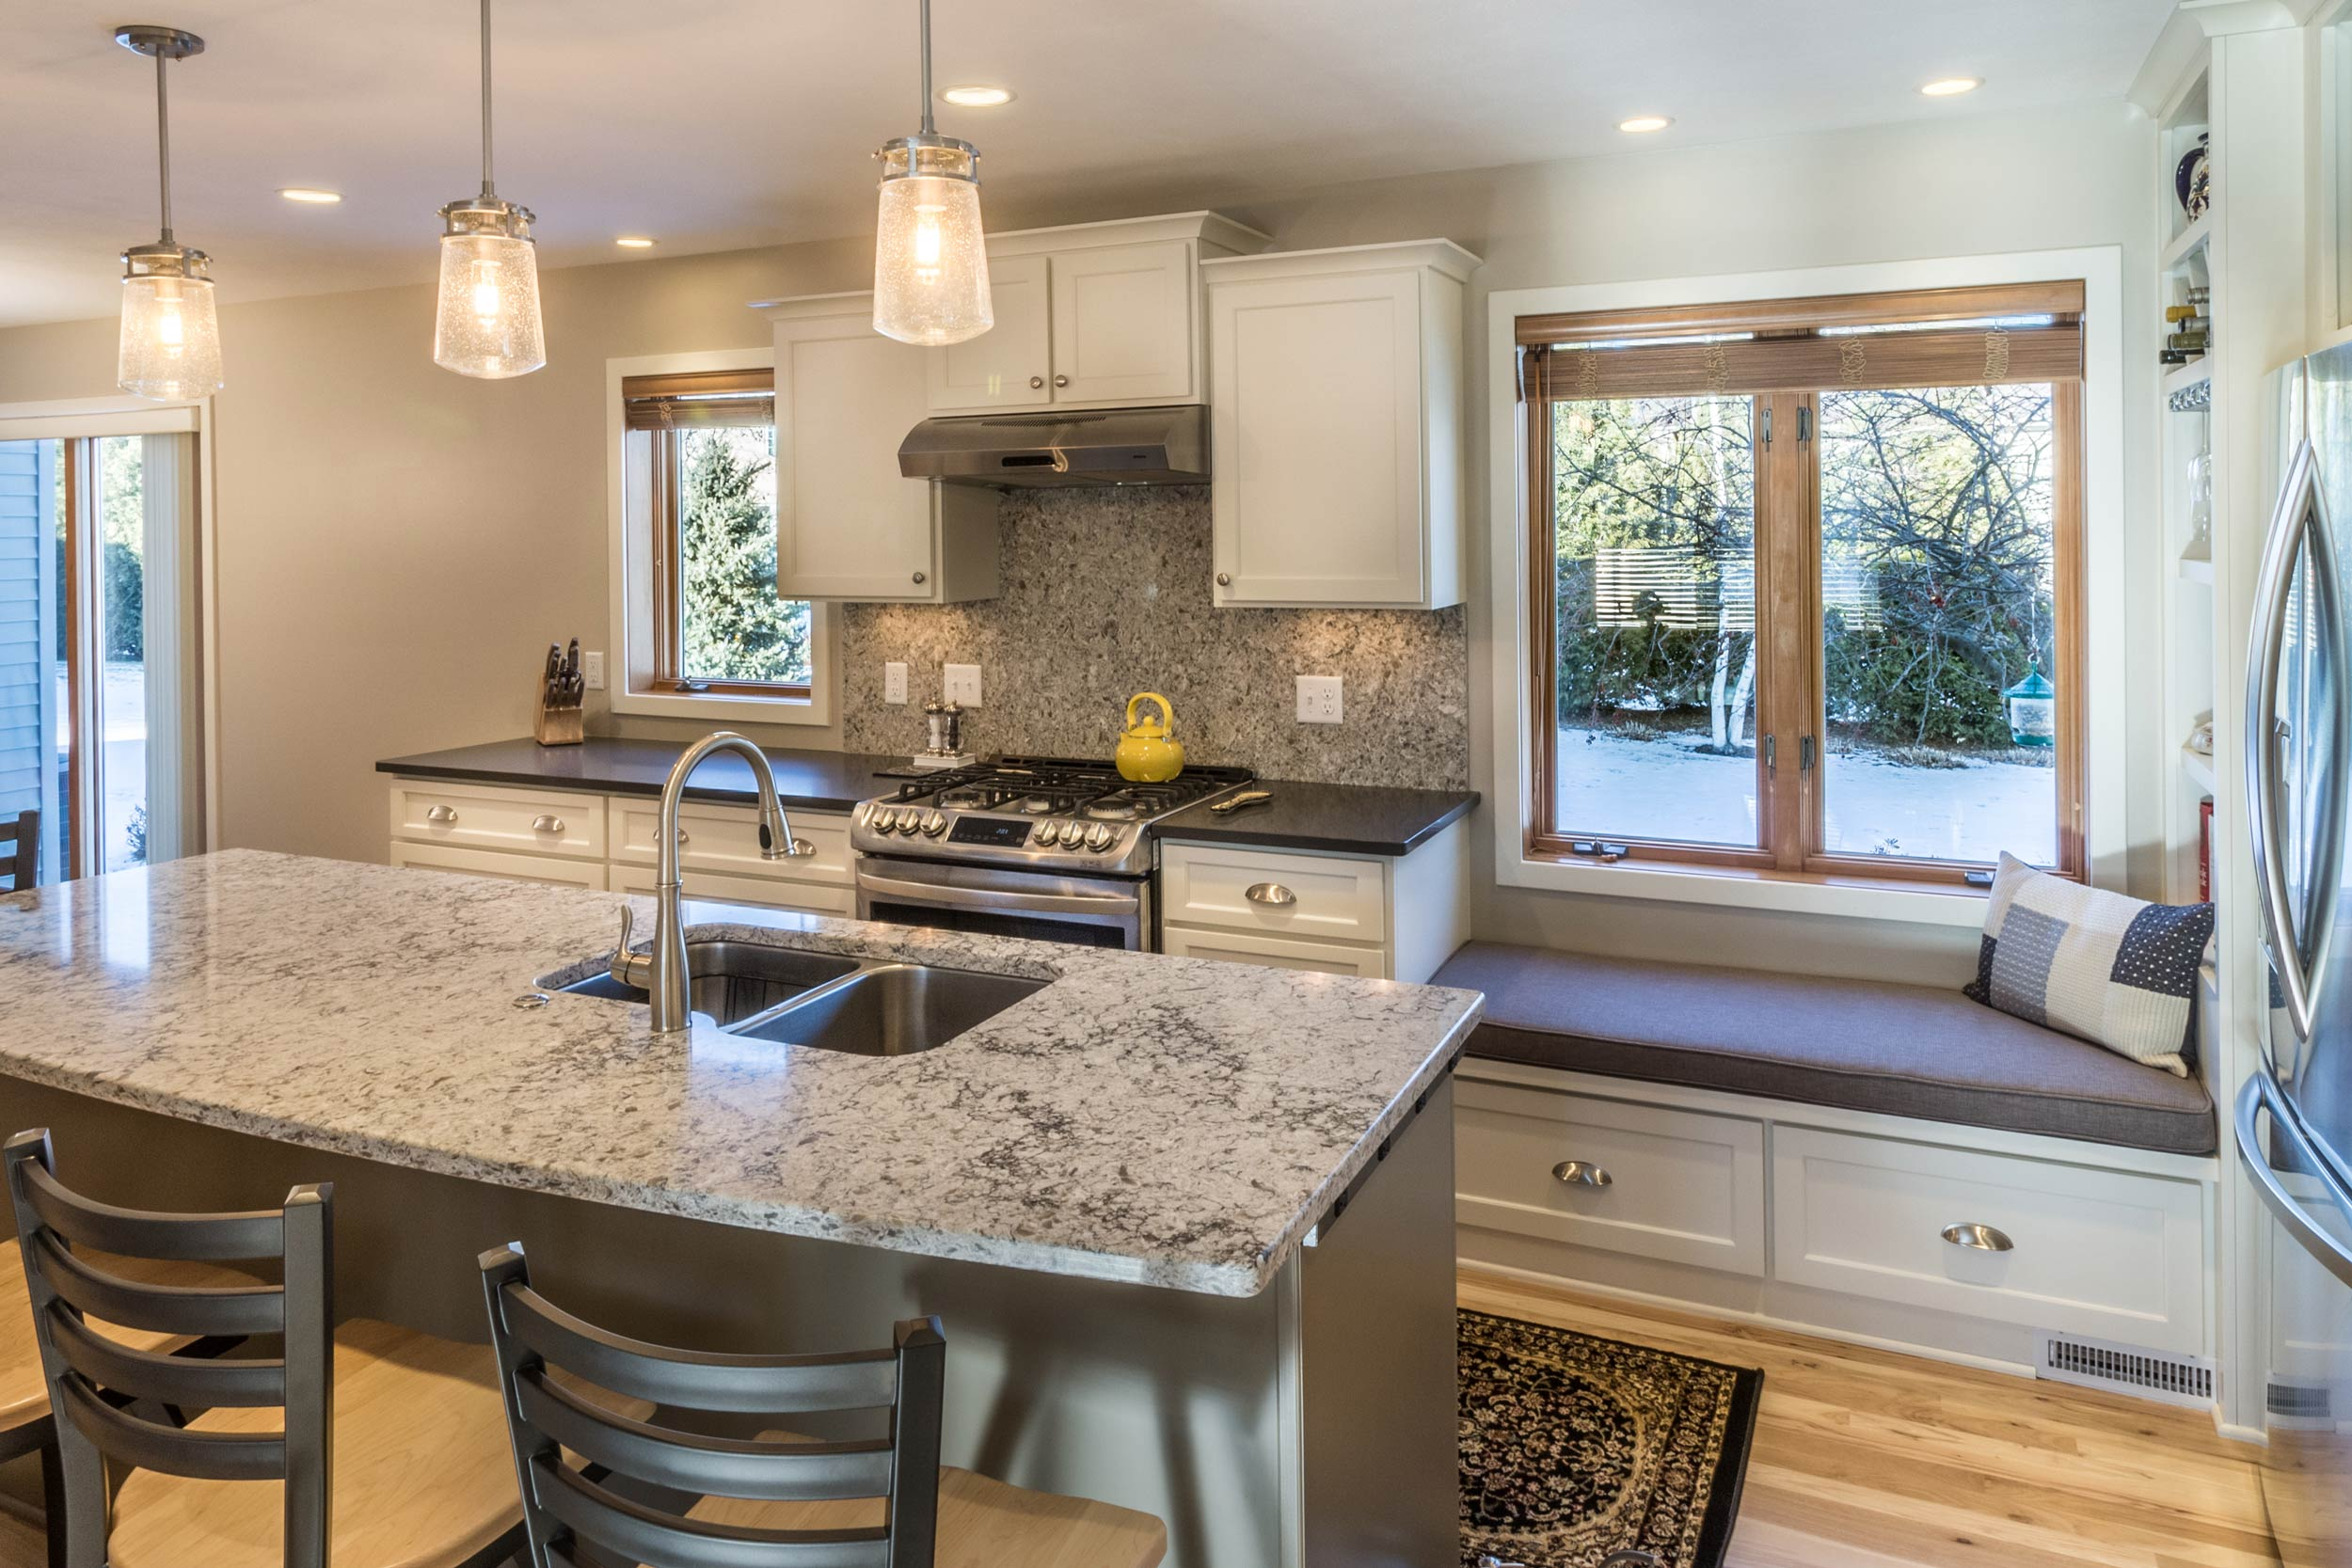 - Himalayan Moon quartz by Caesarstone was used for both the island and backsplash of this kitchen.